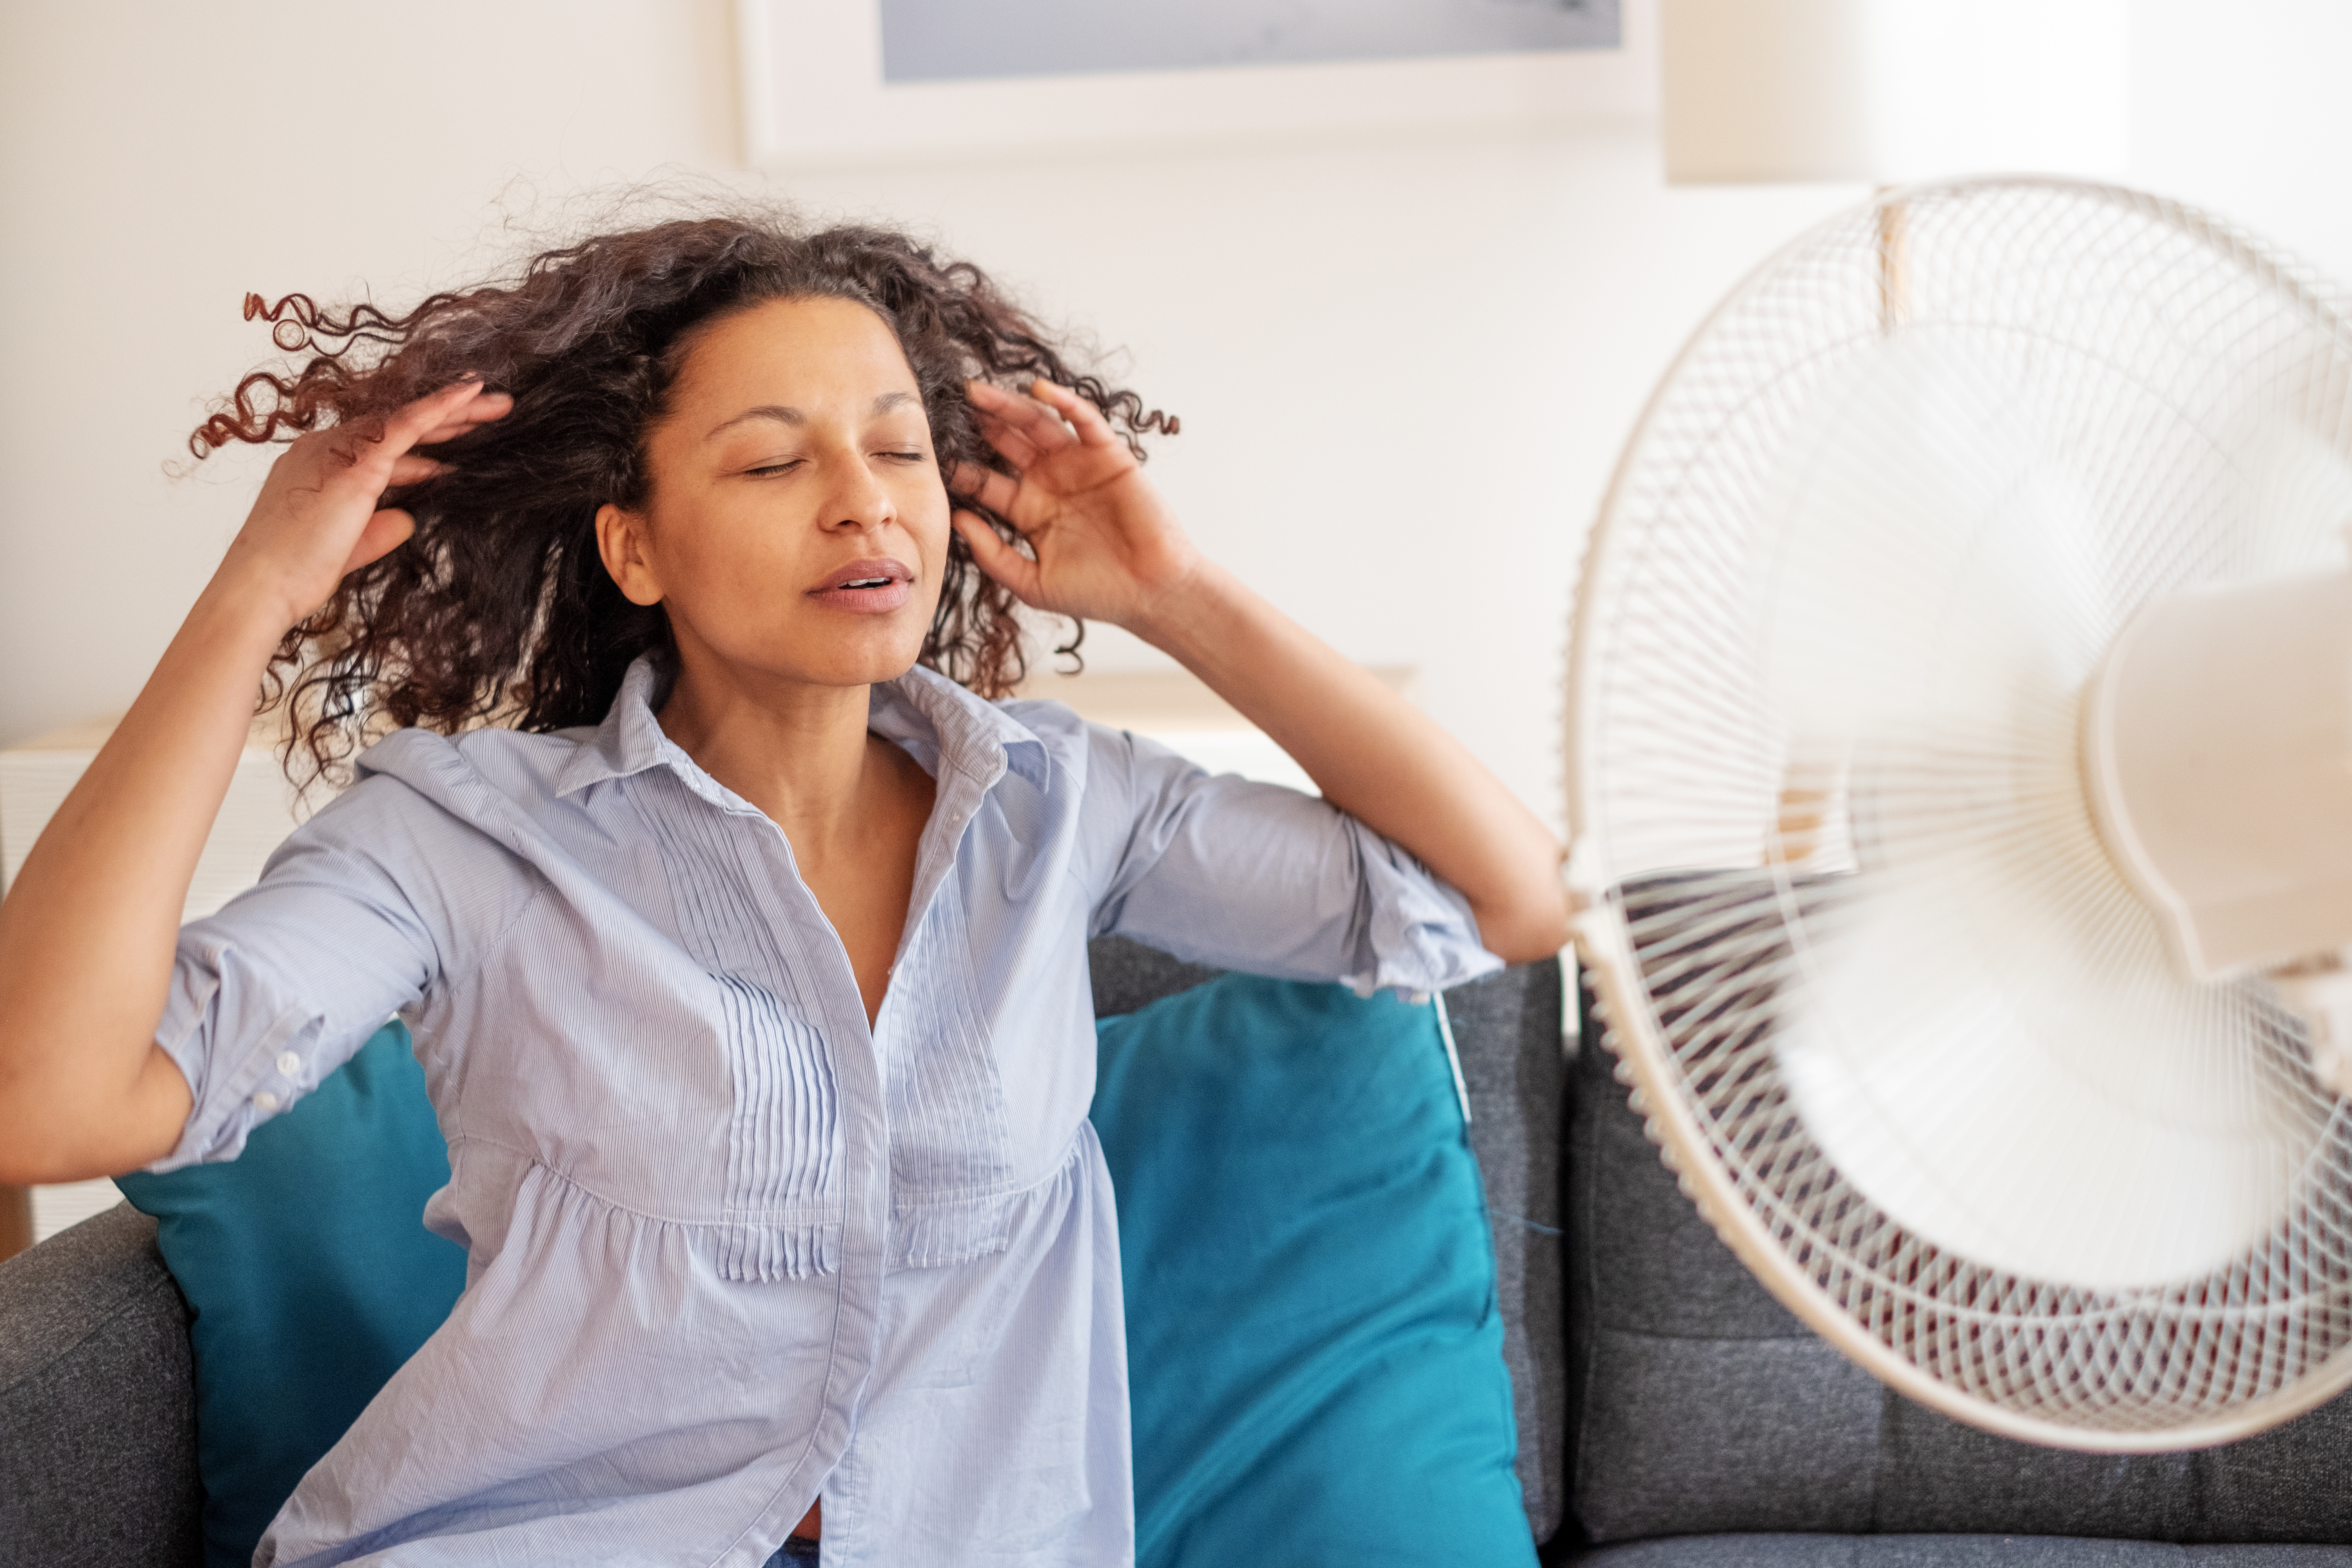 A fan can help you cool down when the summer heat gets to you.